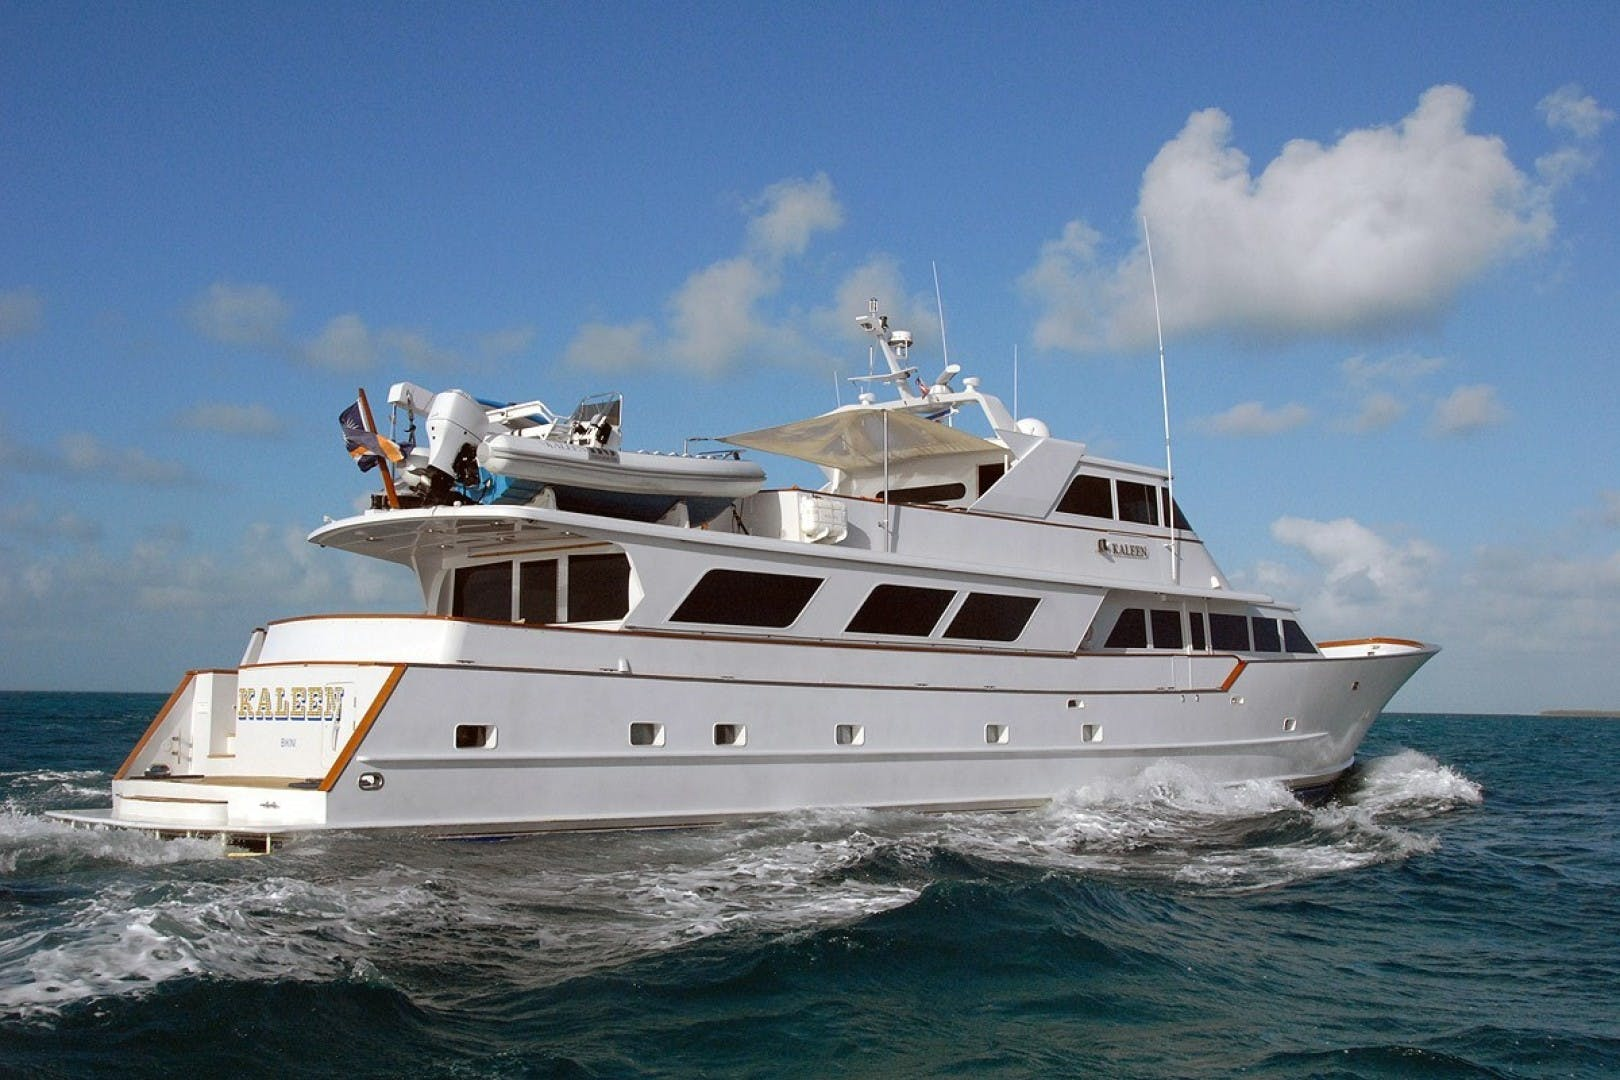 1983 Broward 110' Motor Yacht 110 Pilothouse KALEEN | Picture 2 of 25